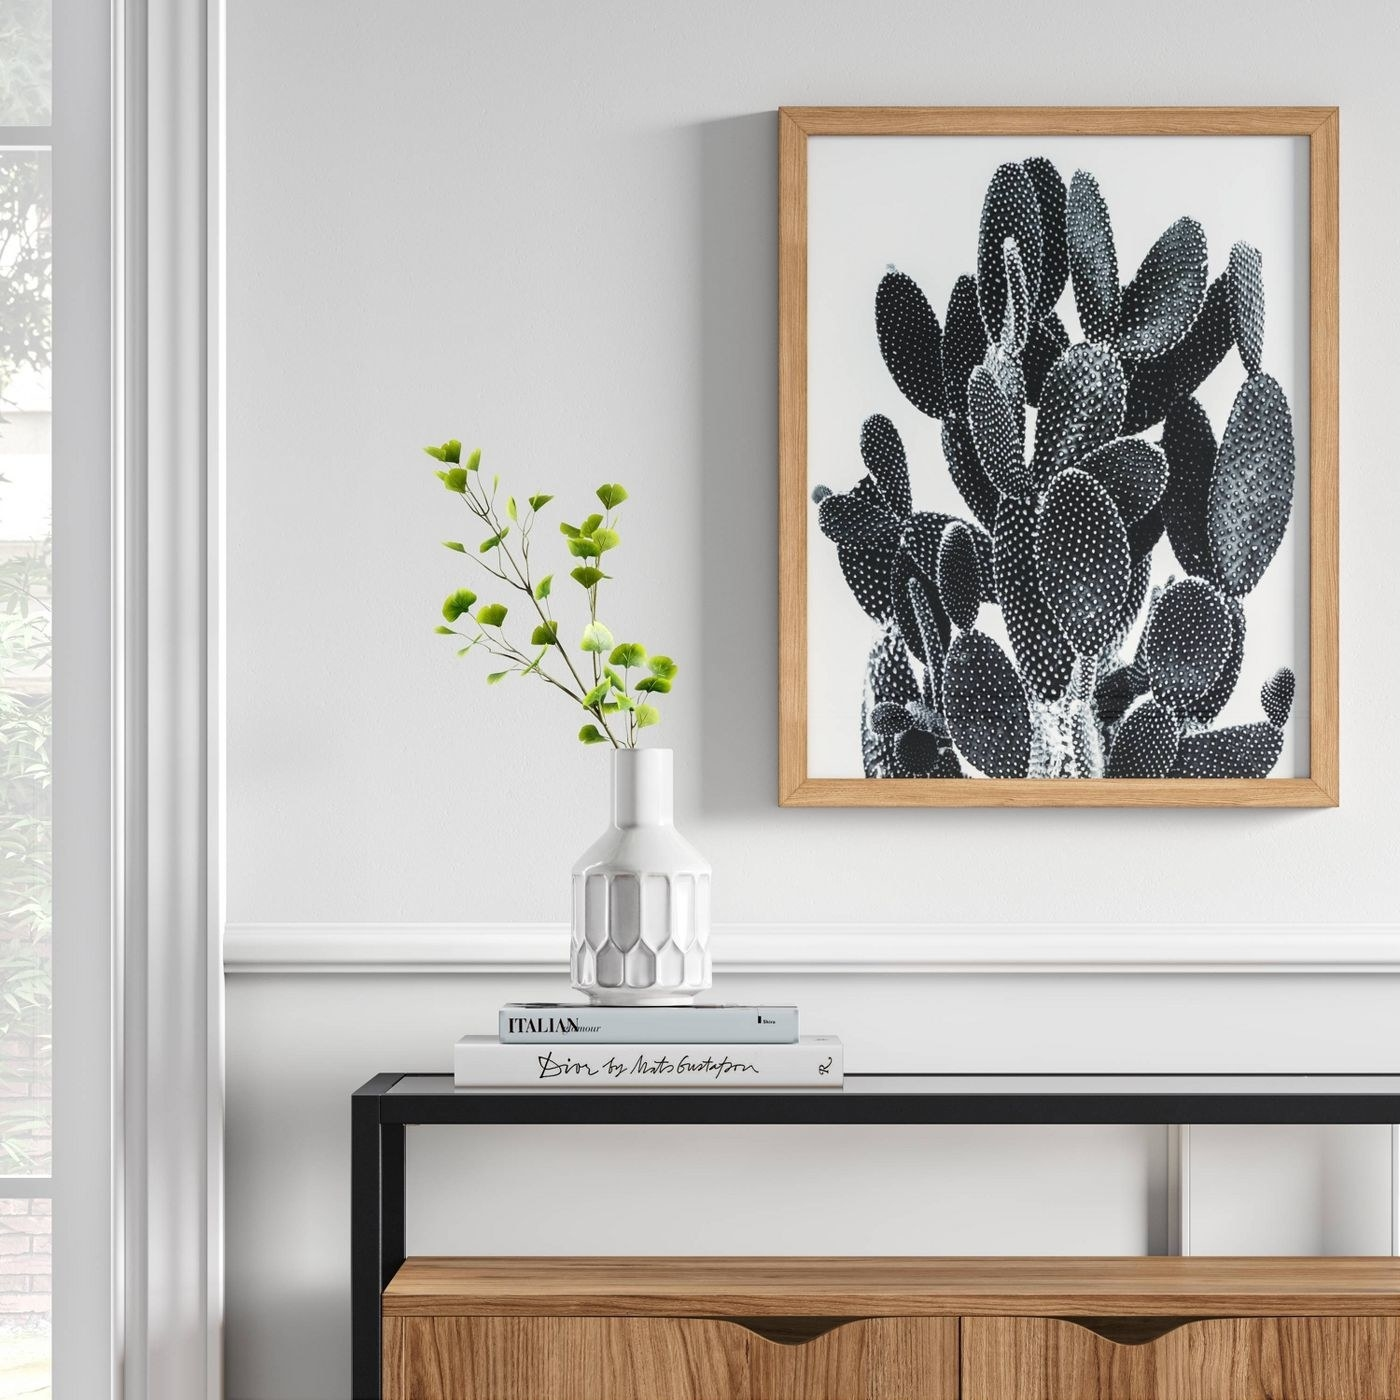 black and white catcus print hanging up above a console table